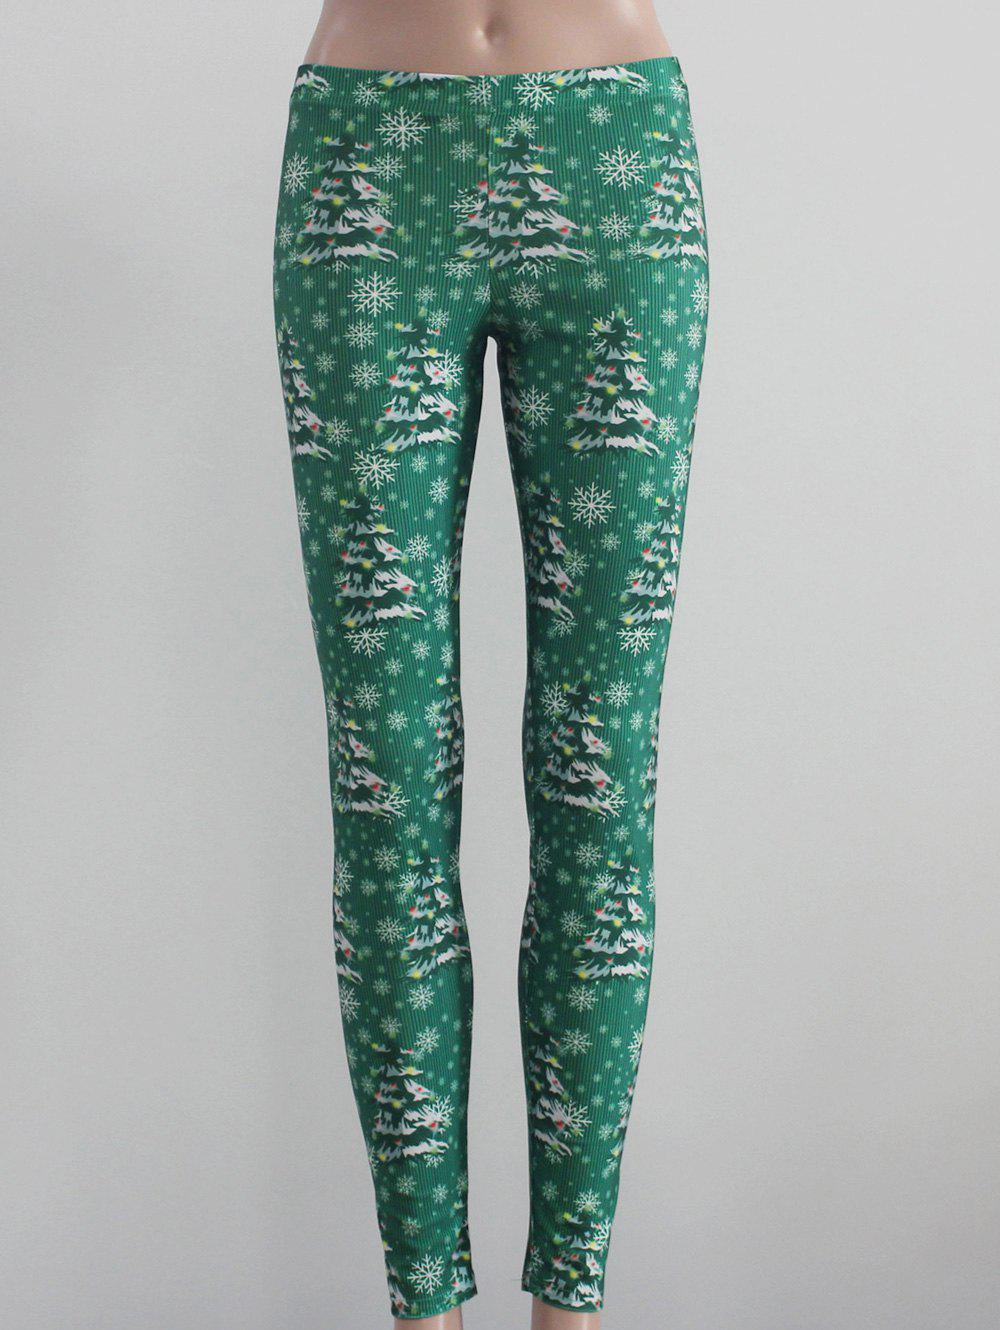 Tree and Snowflake Print Leggings